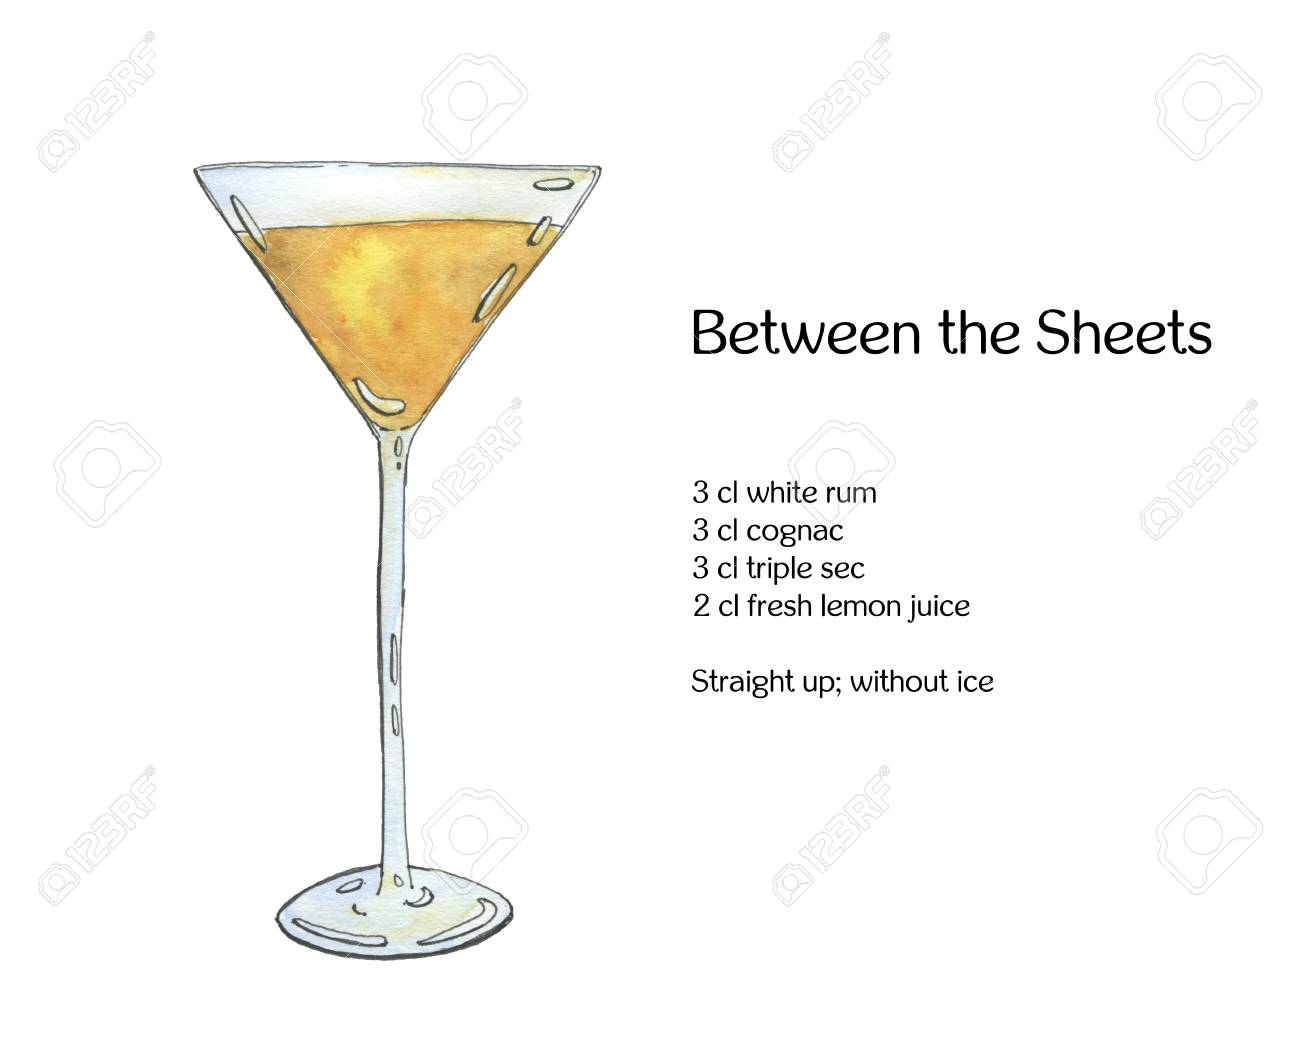 About The Between the Sheets Cocktail